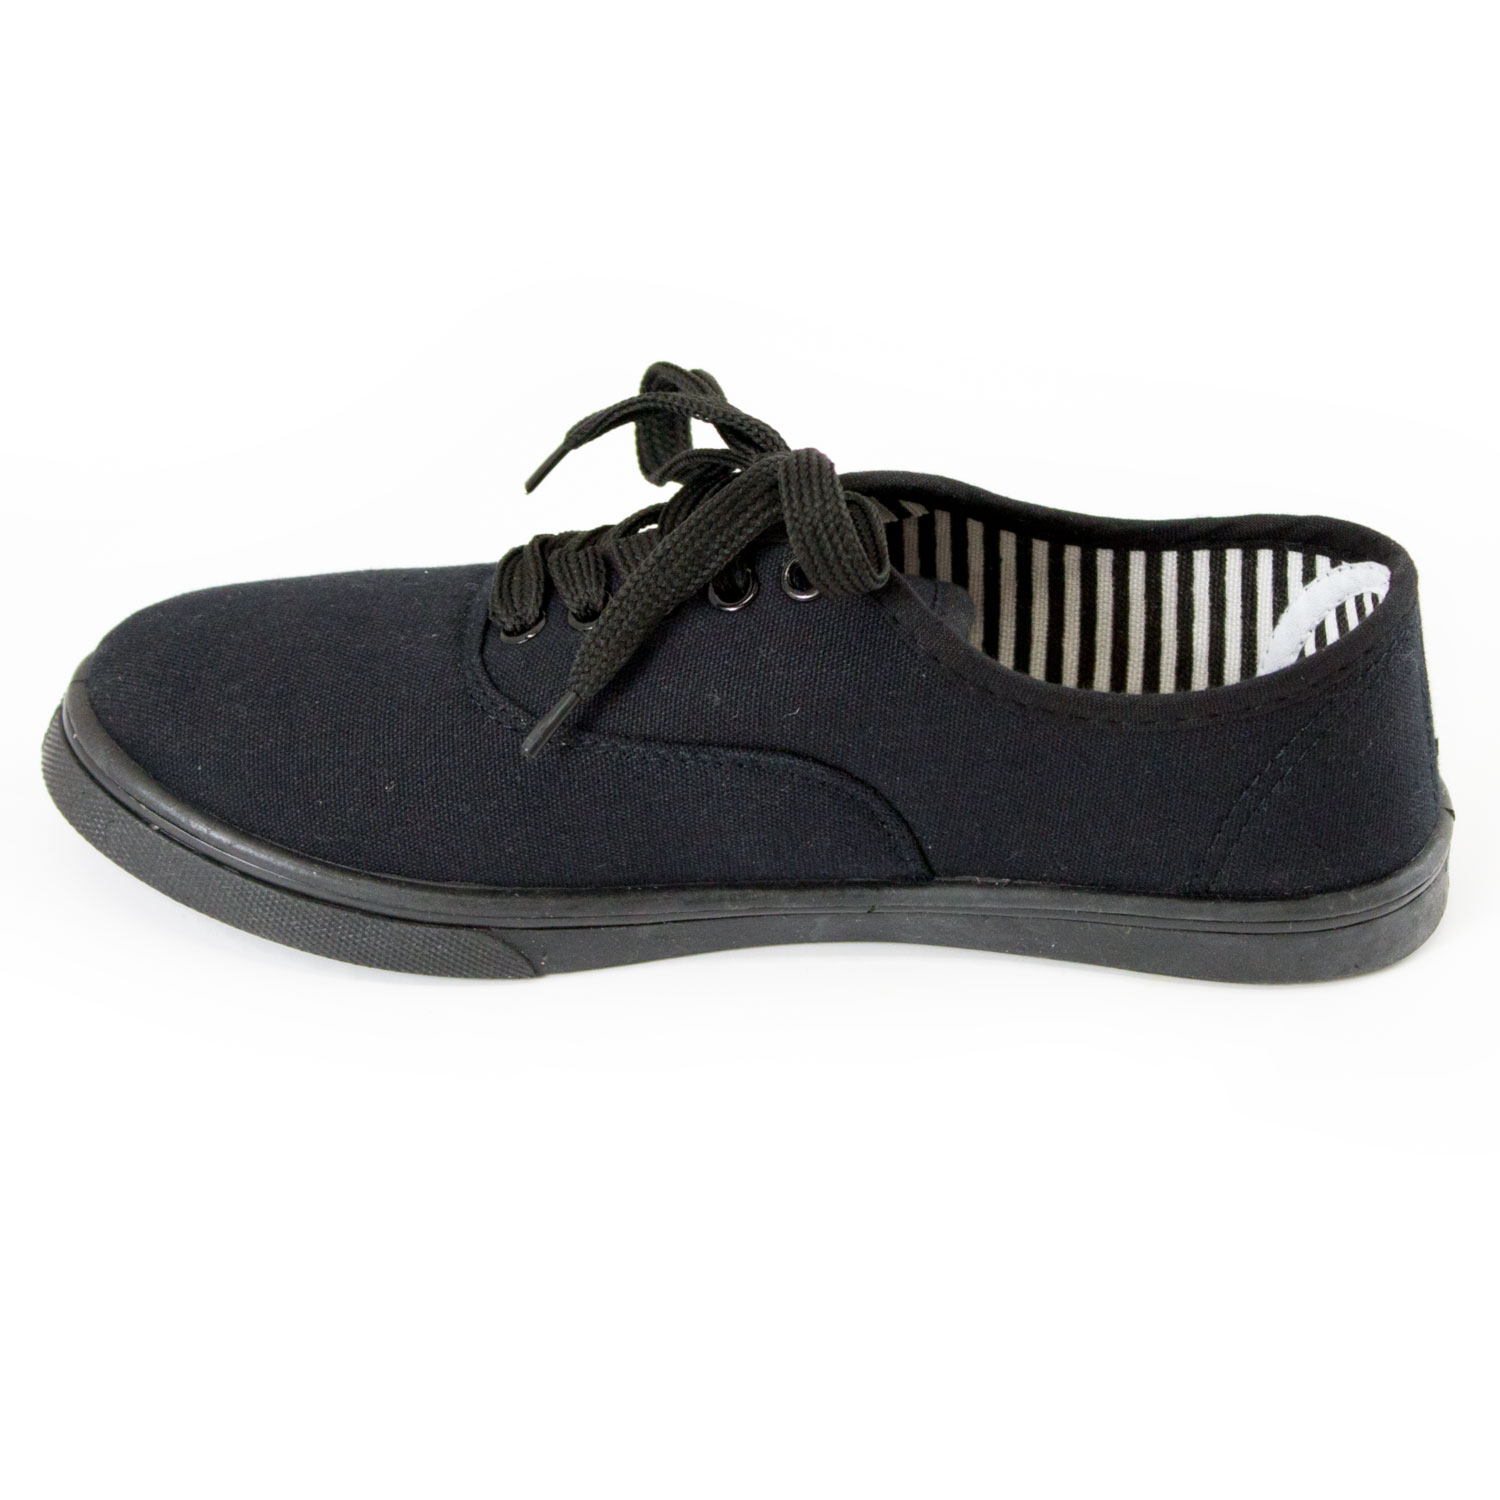 Shop for Men's Fashion Lace-up Canvas Shoes in BLACK online at $ and discover other cheap Casual Shoes at nakedprogrammzce.cf Cheapest and Latest women & men fashion site including categories such as dresses, shoes, bags and jewelry with free shipping all over the world.